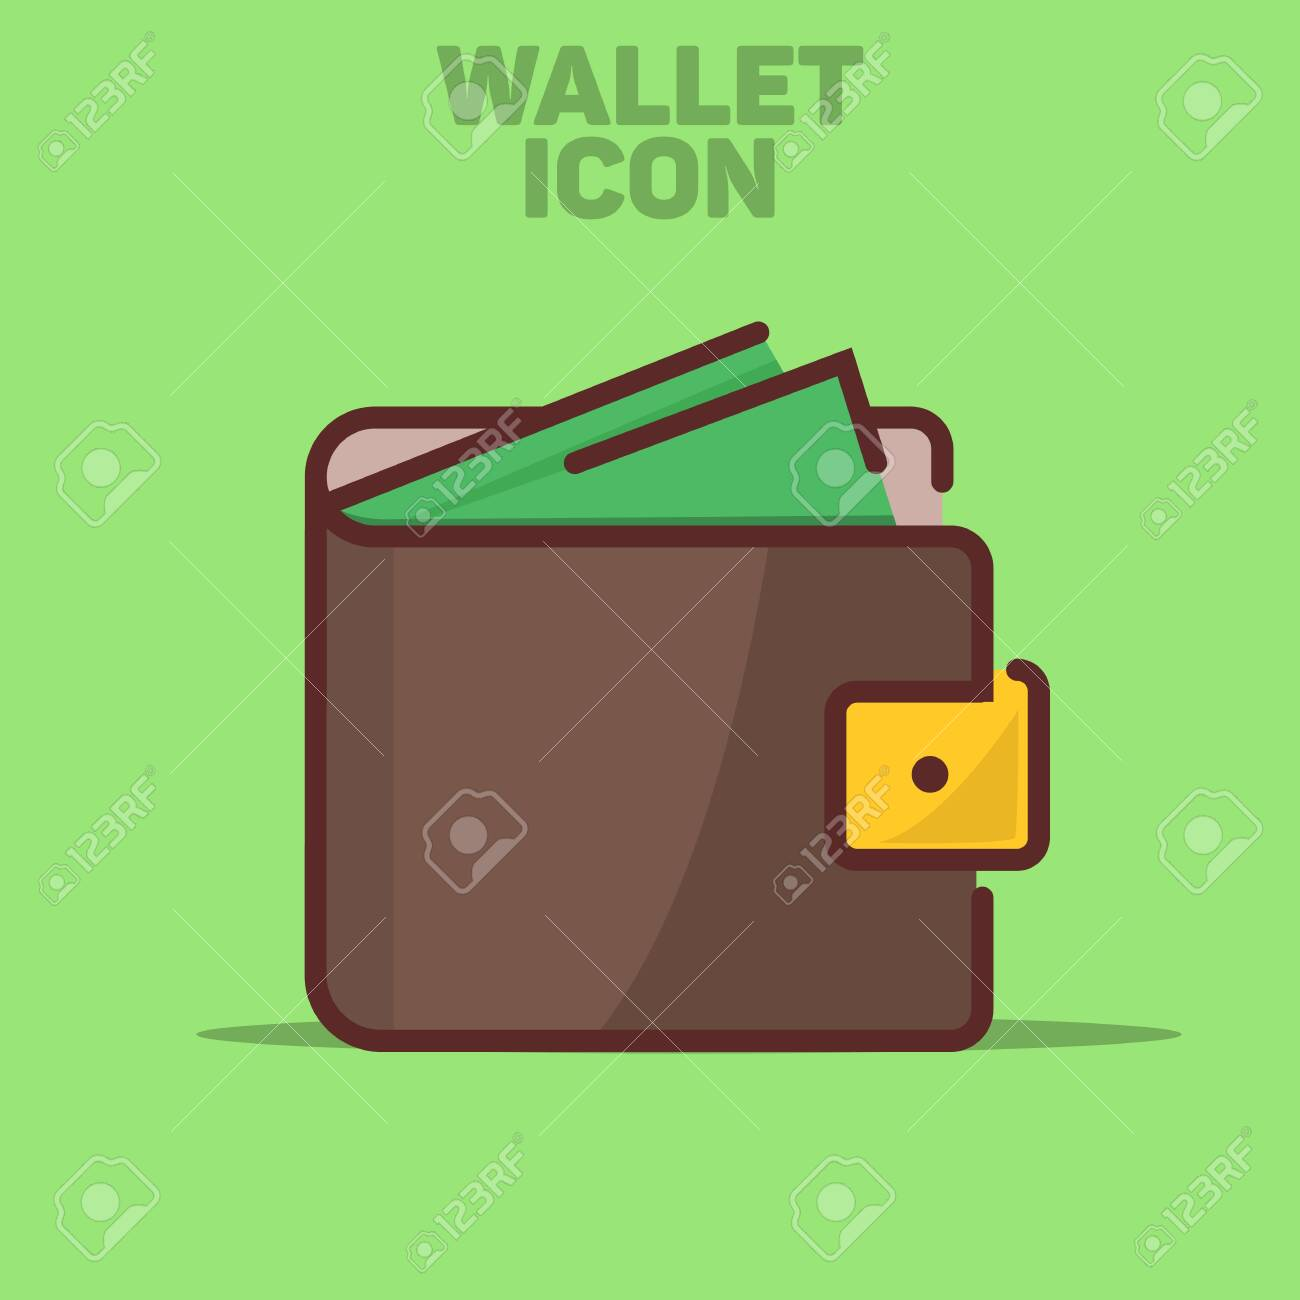 Isolated Wallet Icon Vector Illustration Green Background - 132039788